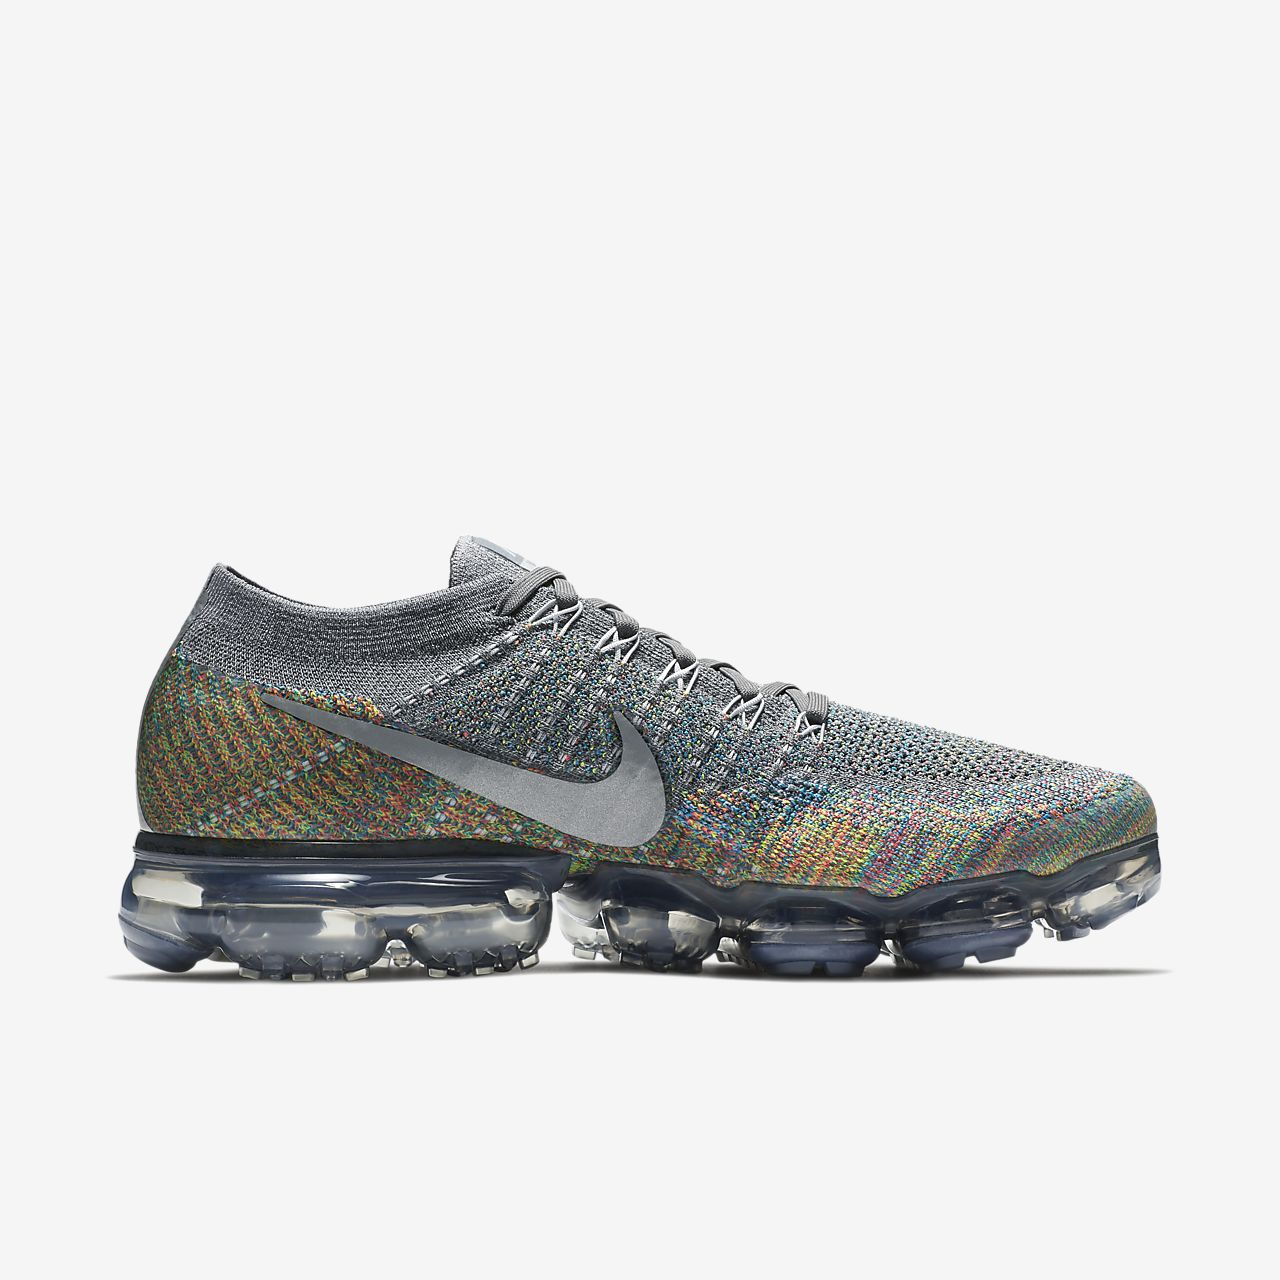 low priced 98323 b3294 nike bubble shoes